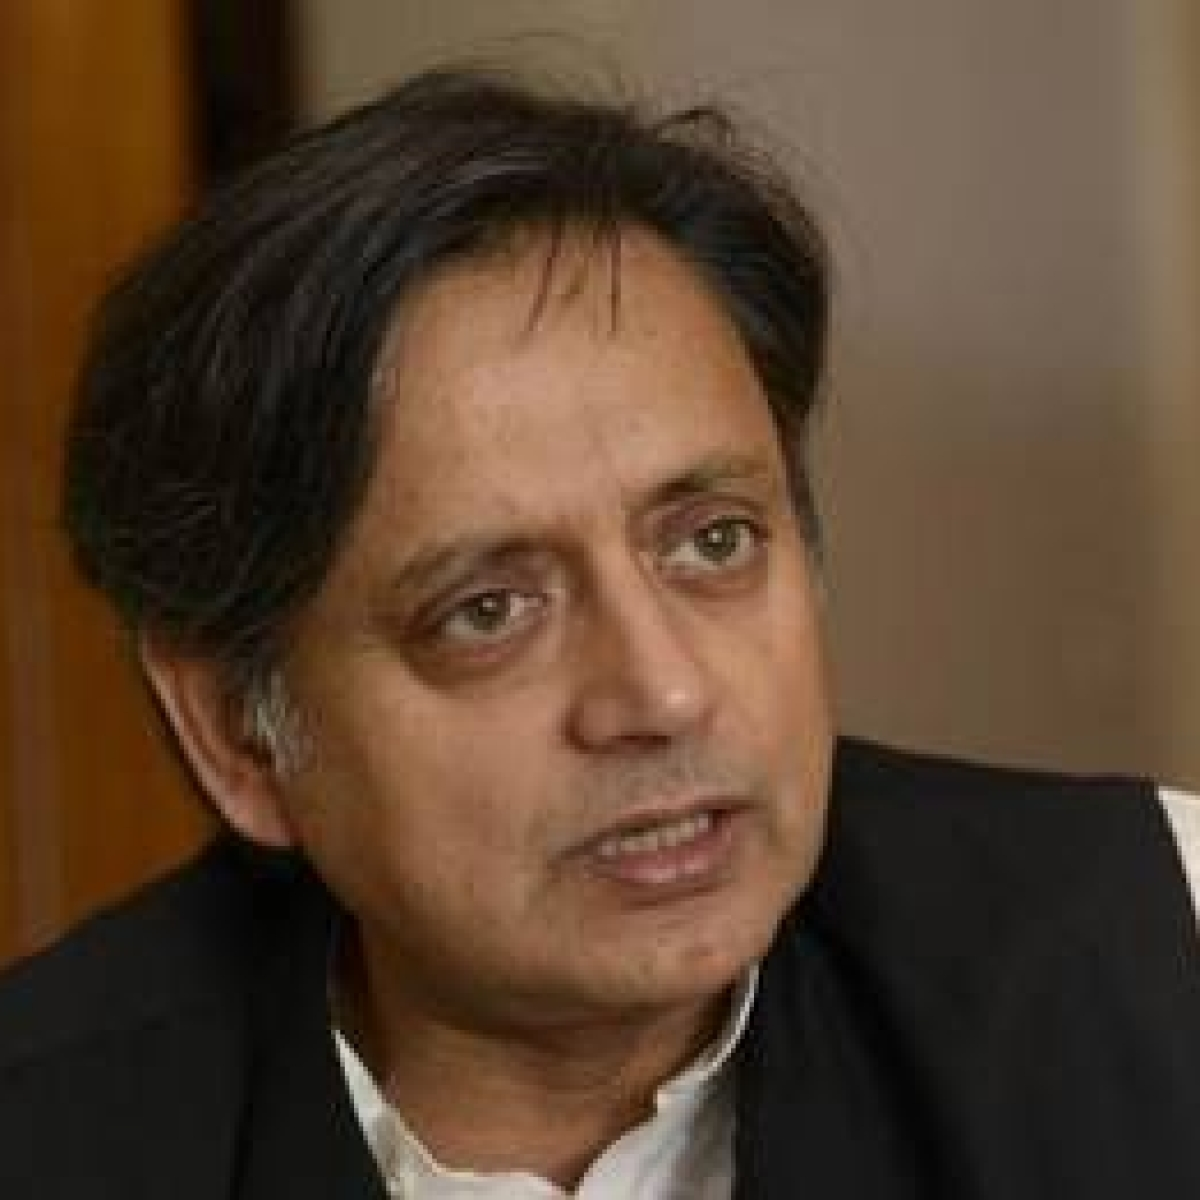 Muslim would be asked documents to prove their nationality: Shashi Tharoor